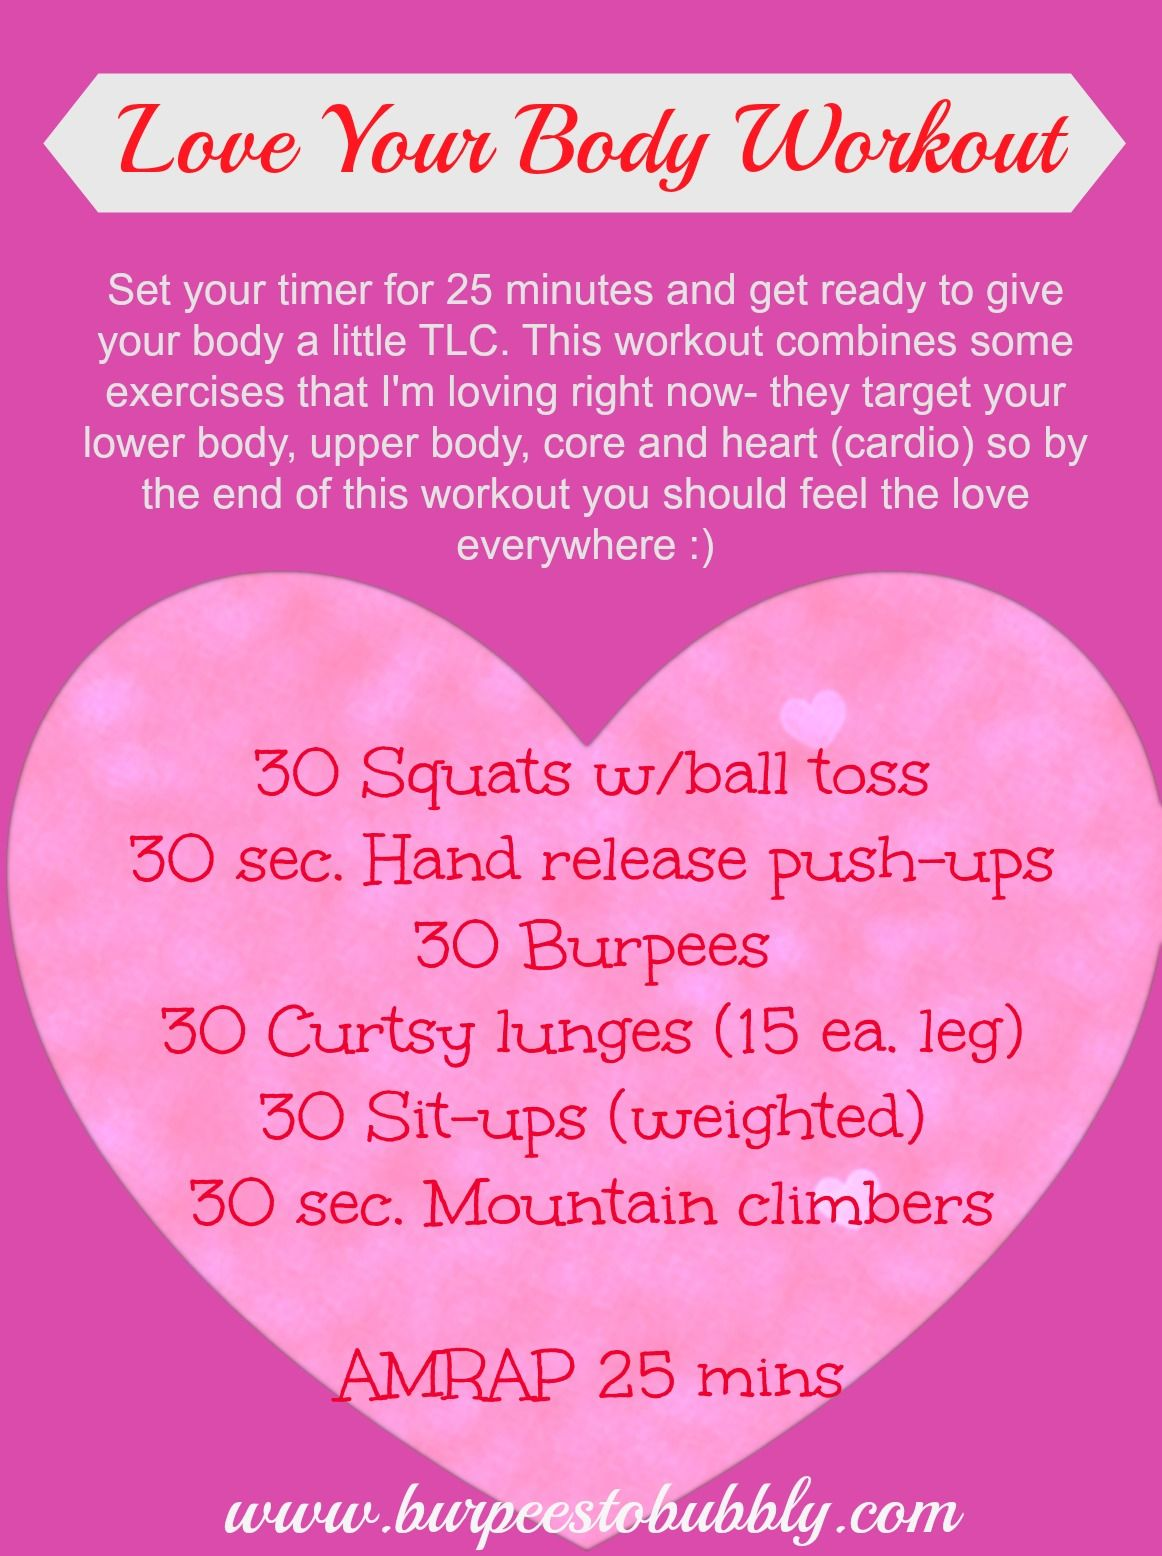 Wednesday Workout {Valentine's Day Edition} The Love Your